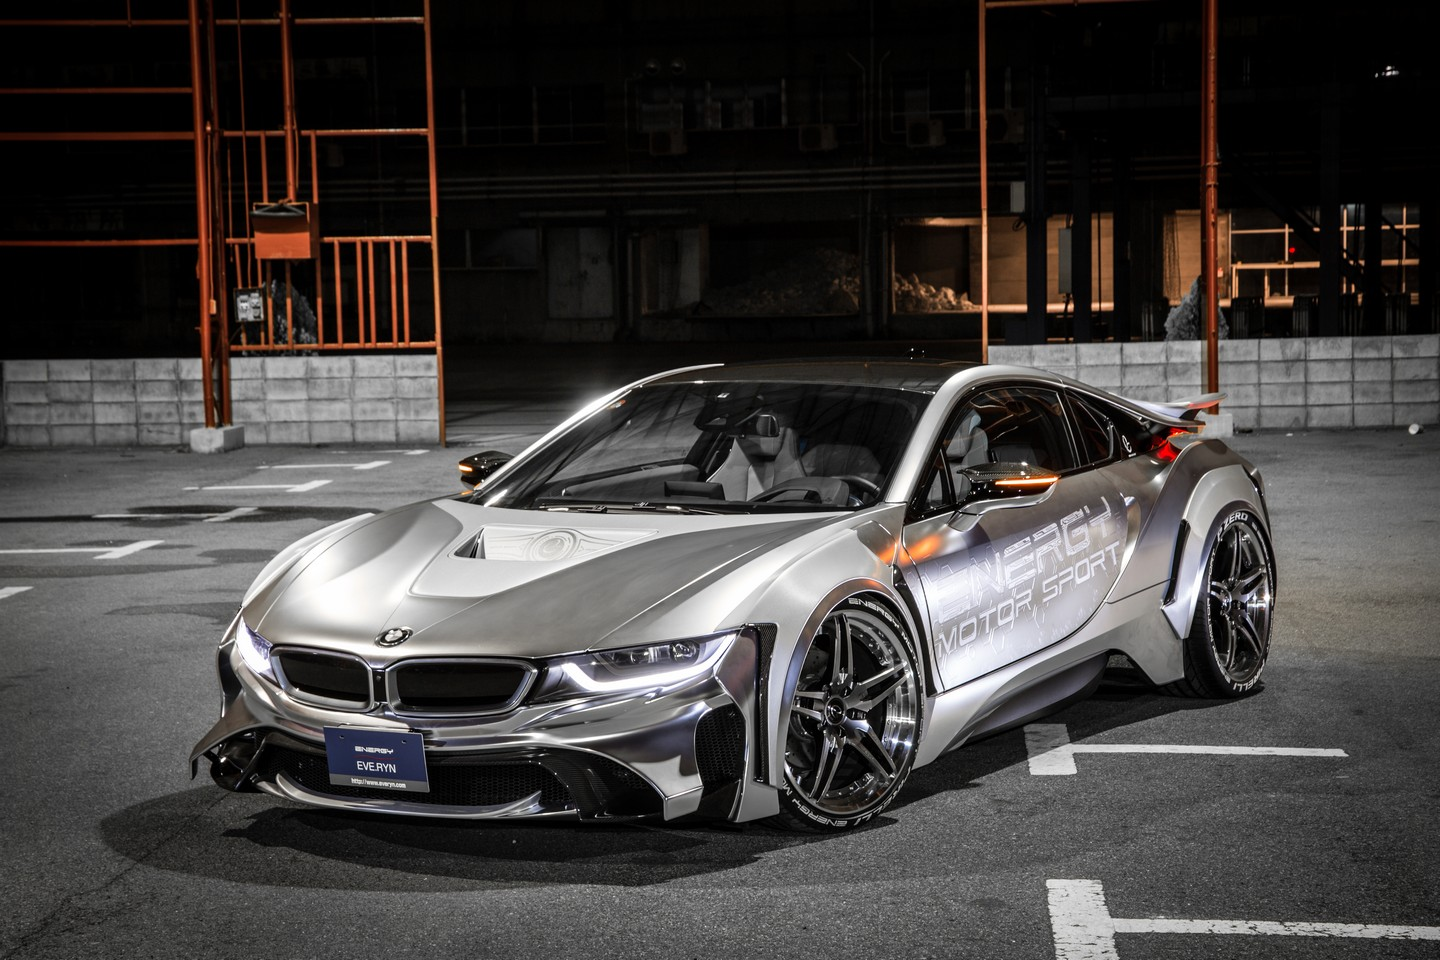 bmw i8 clad in other worldly bodykit by niche japanese tuner energy motor sport carscoops. Black Bedroom Furniture Sets. Home Design Ideas